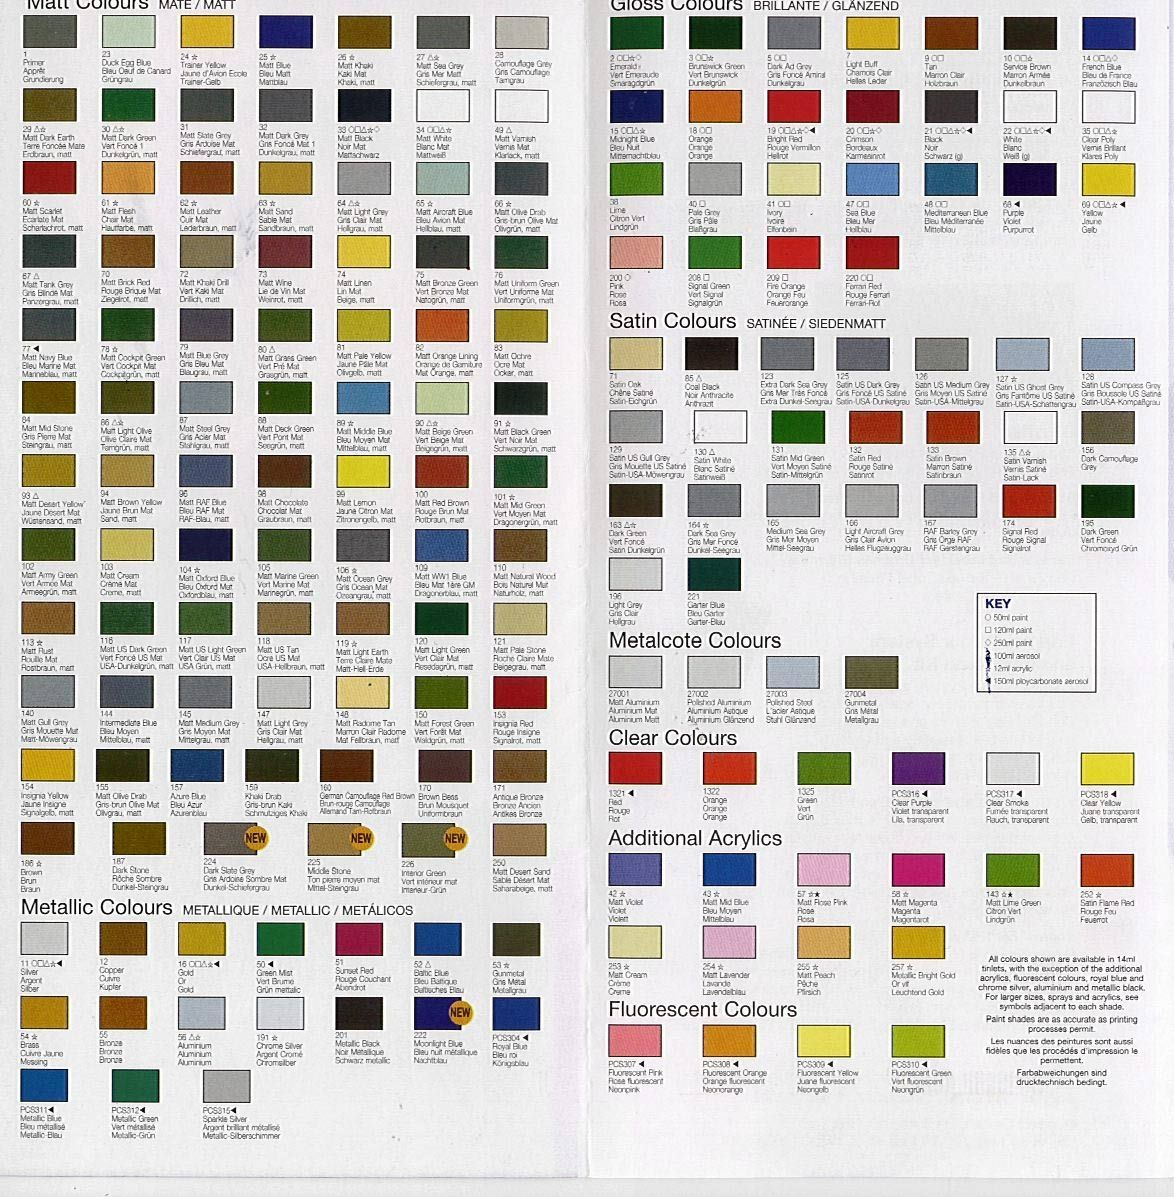 Here is our cross reference chart for the gunze sangyo mrhobby here is our cross reference chart for the gunze sangyo mrhobbyaqueous paints model ship building pinterest geenschuldenfo Image collections